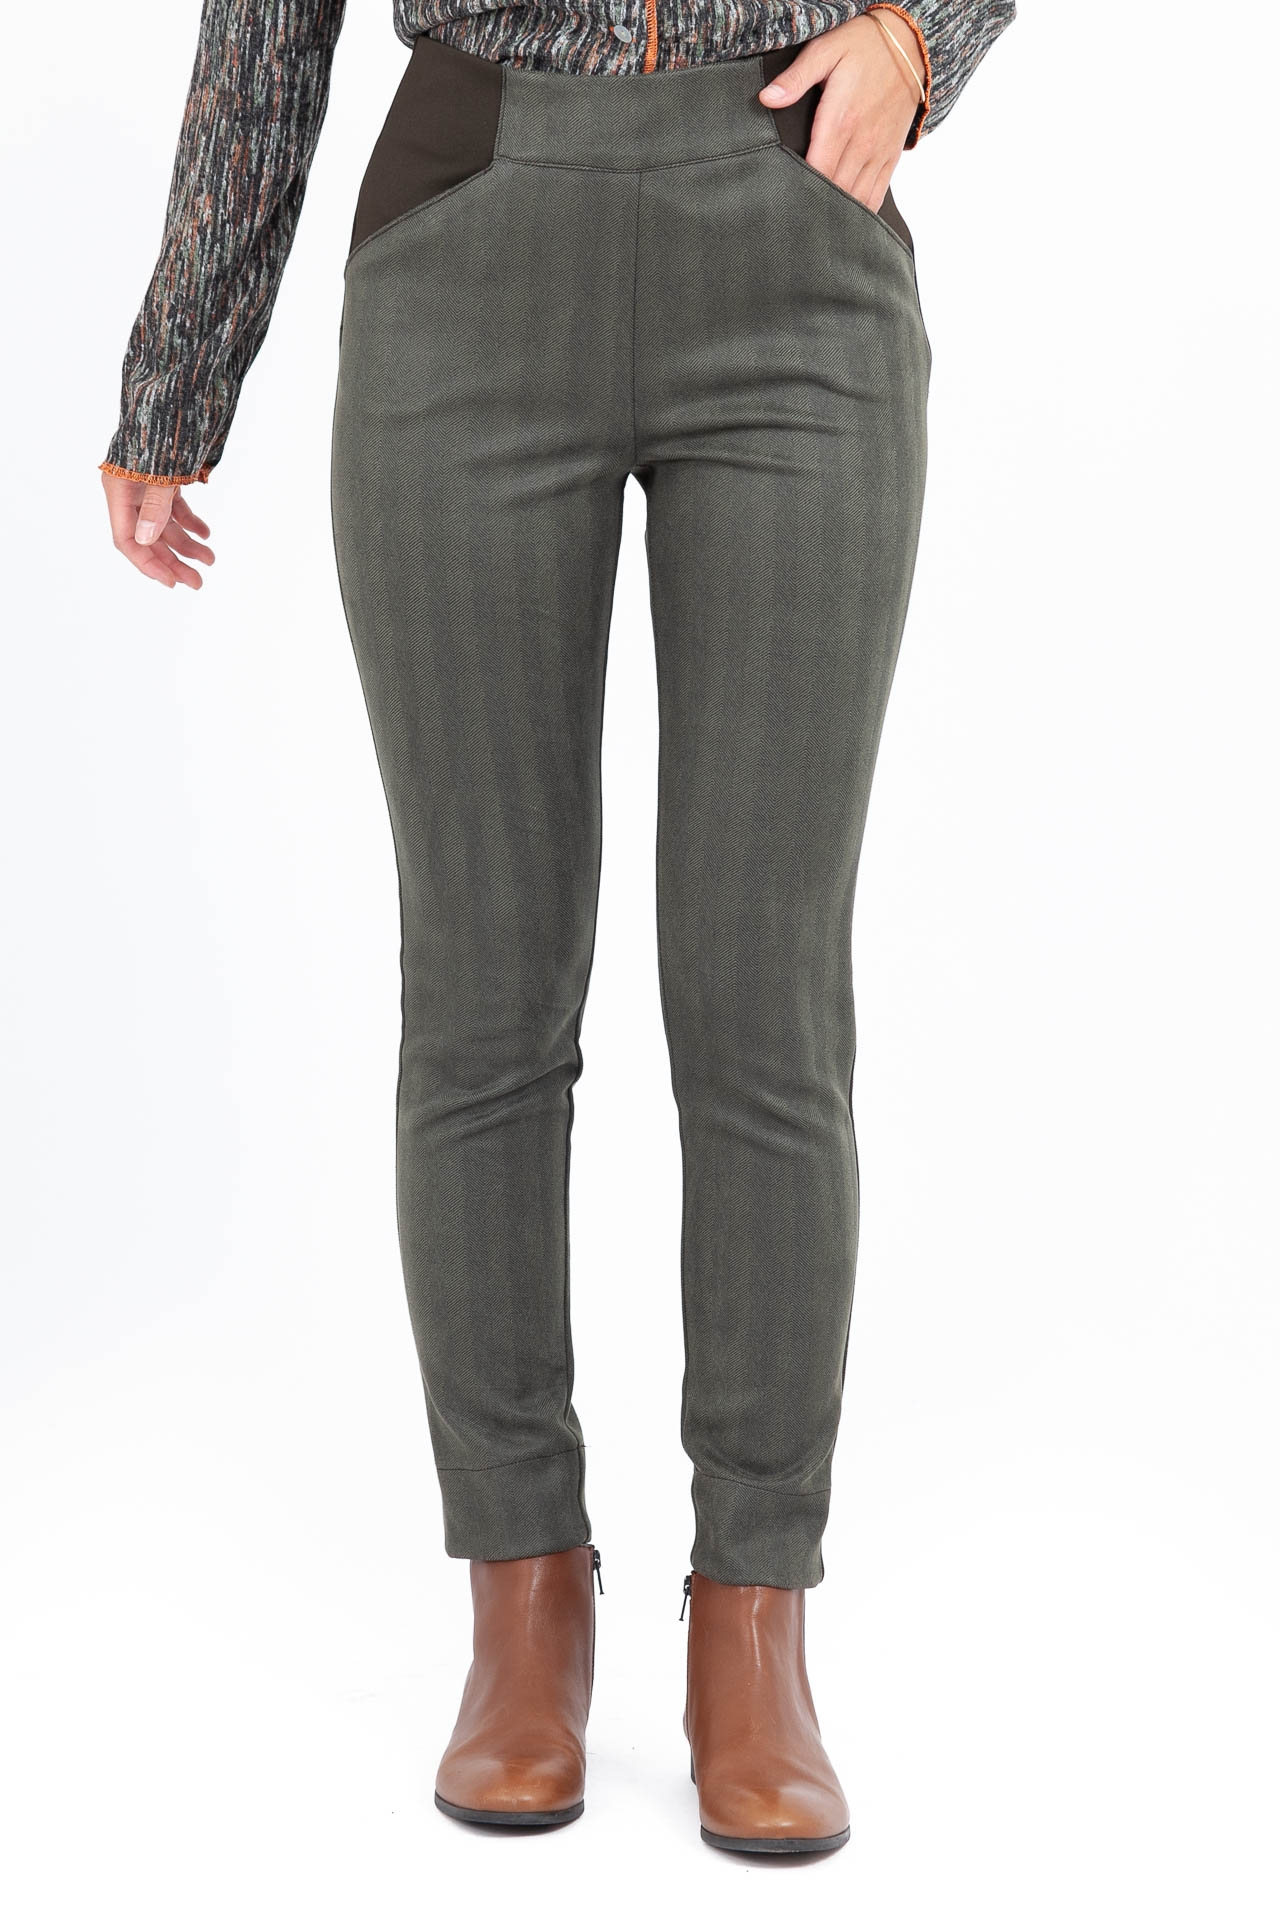 Pantalon Jockey chevrons